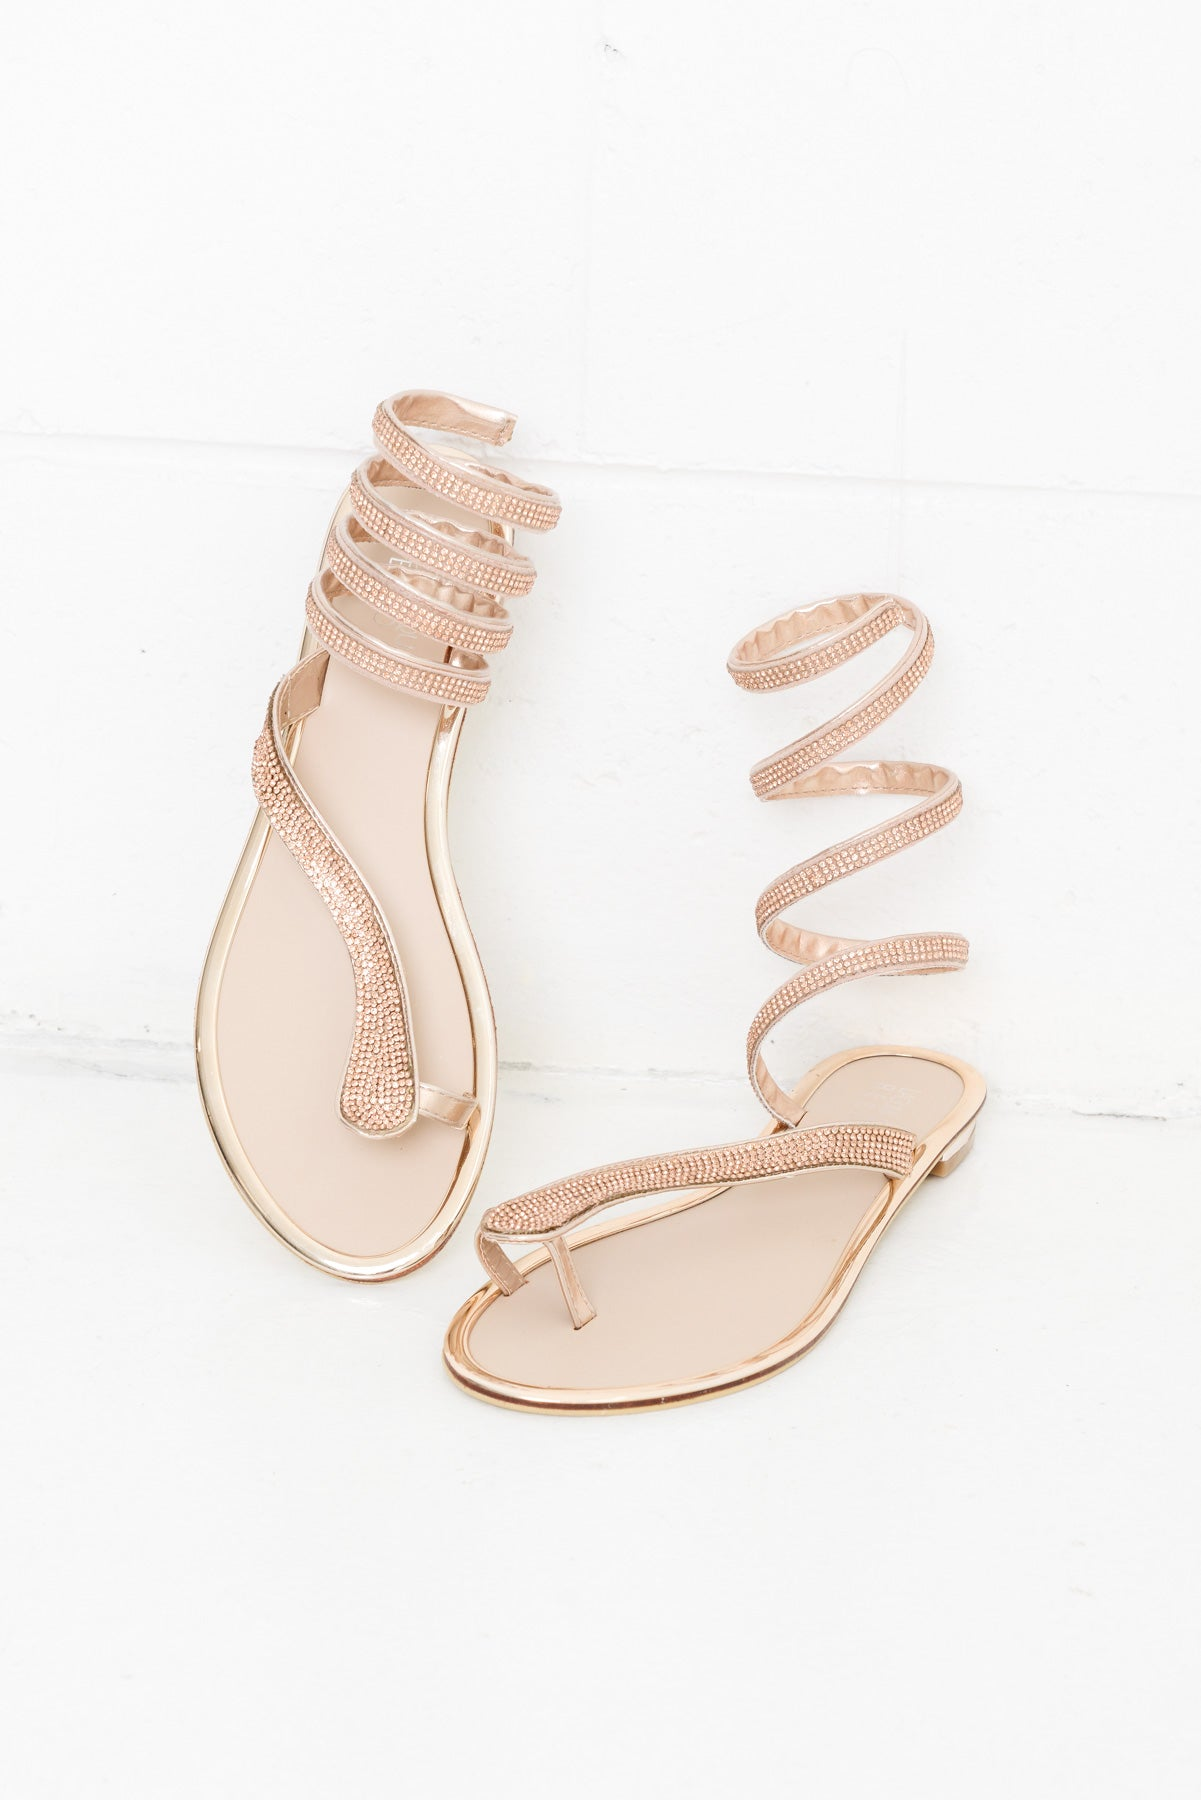 Snazzy Rose Gold Sandal